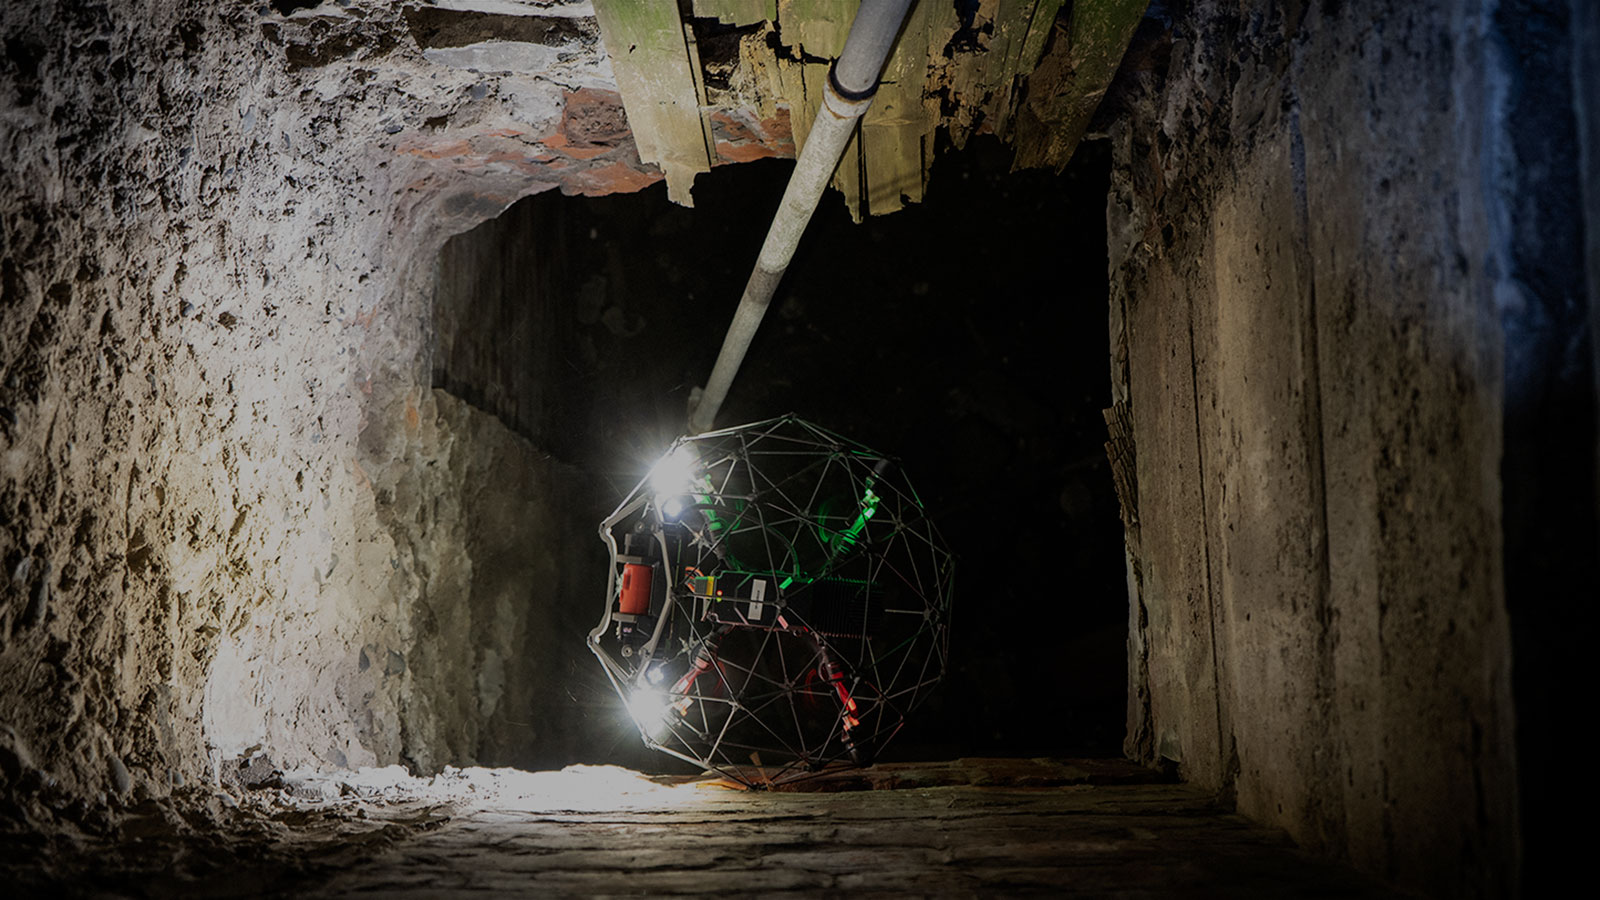 internal drone for survey and inspection within a confined space